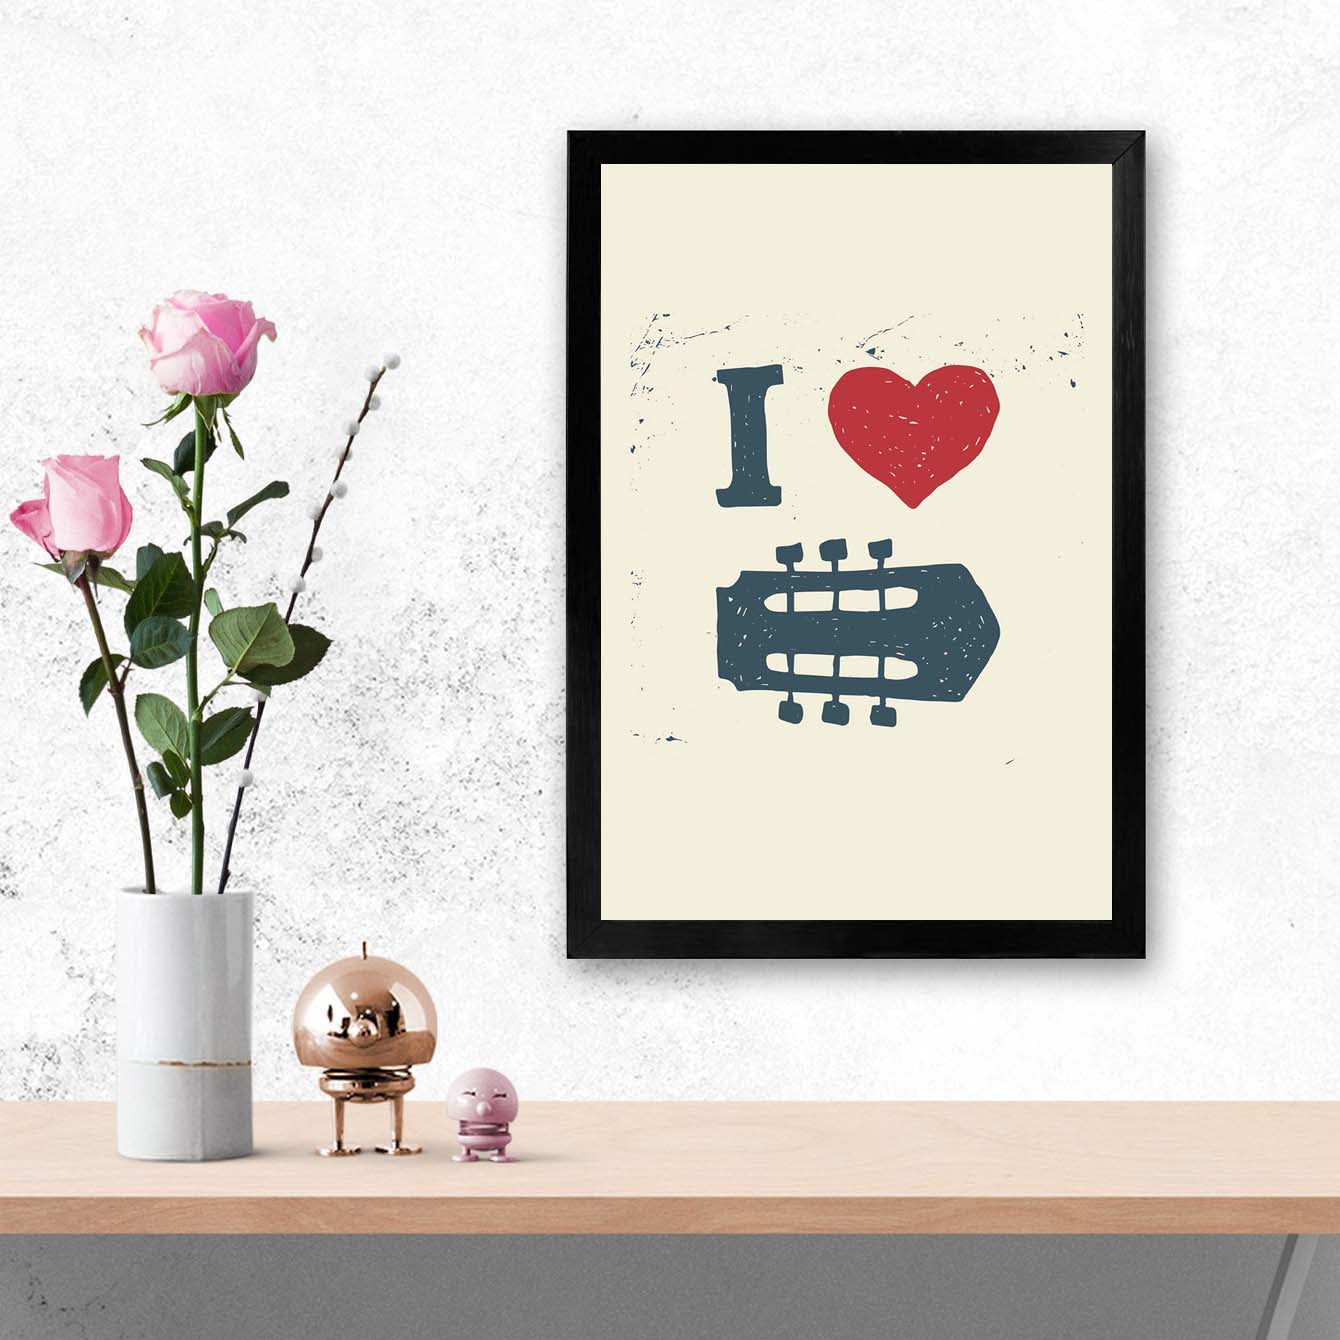 I Luv Music Framed Poster